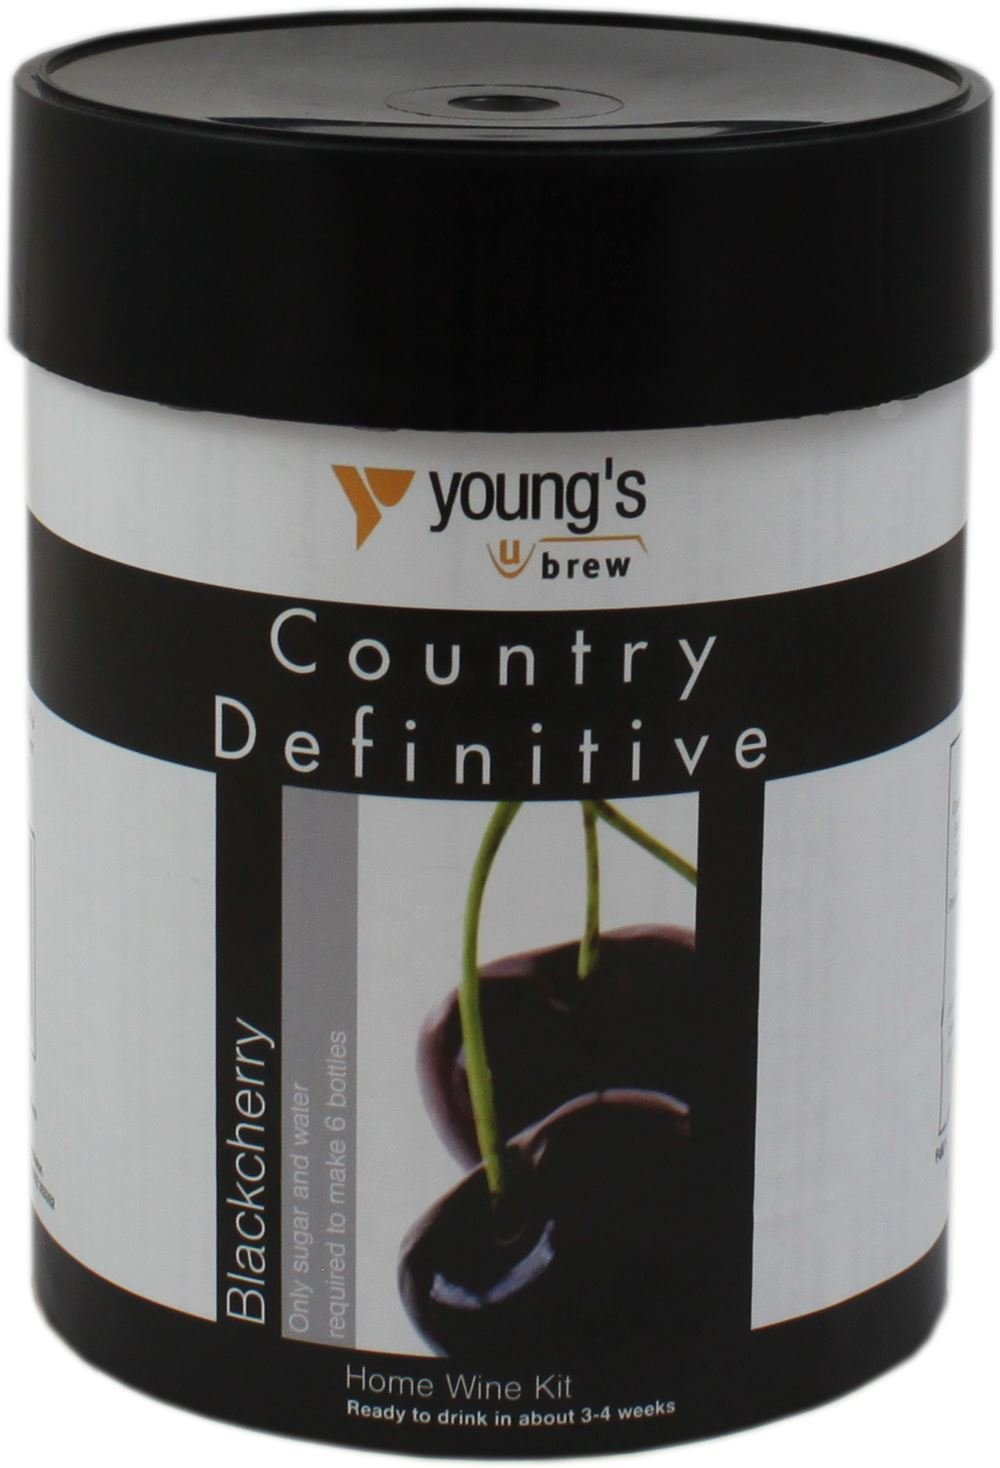 Youngs Country Definitive Black Cherry Wine Kit 6 Bottle